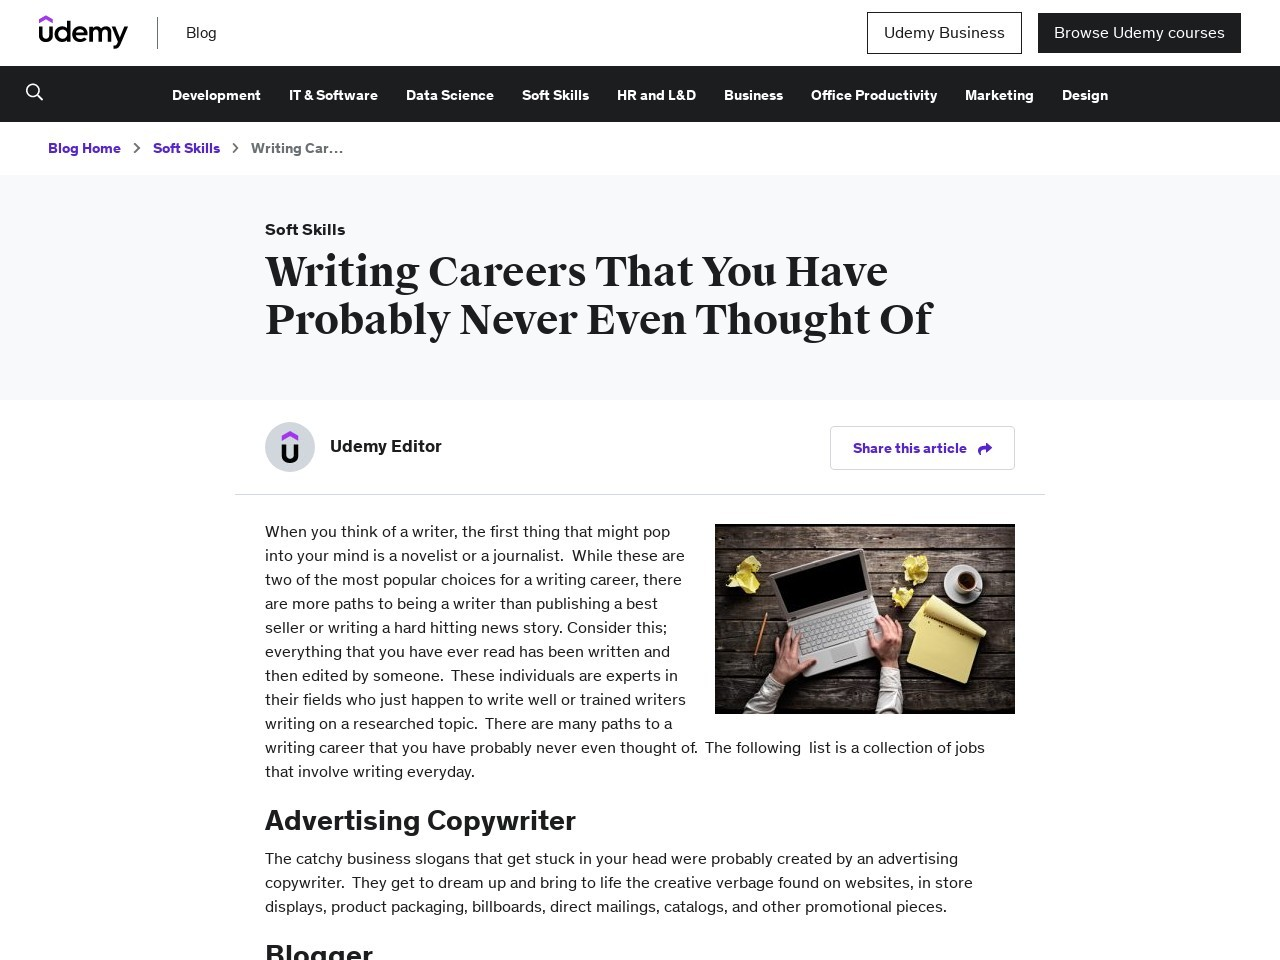 Writing Careers That You Have Probably Never Even … – Blog